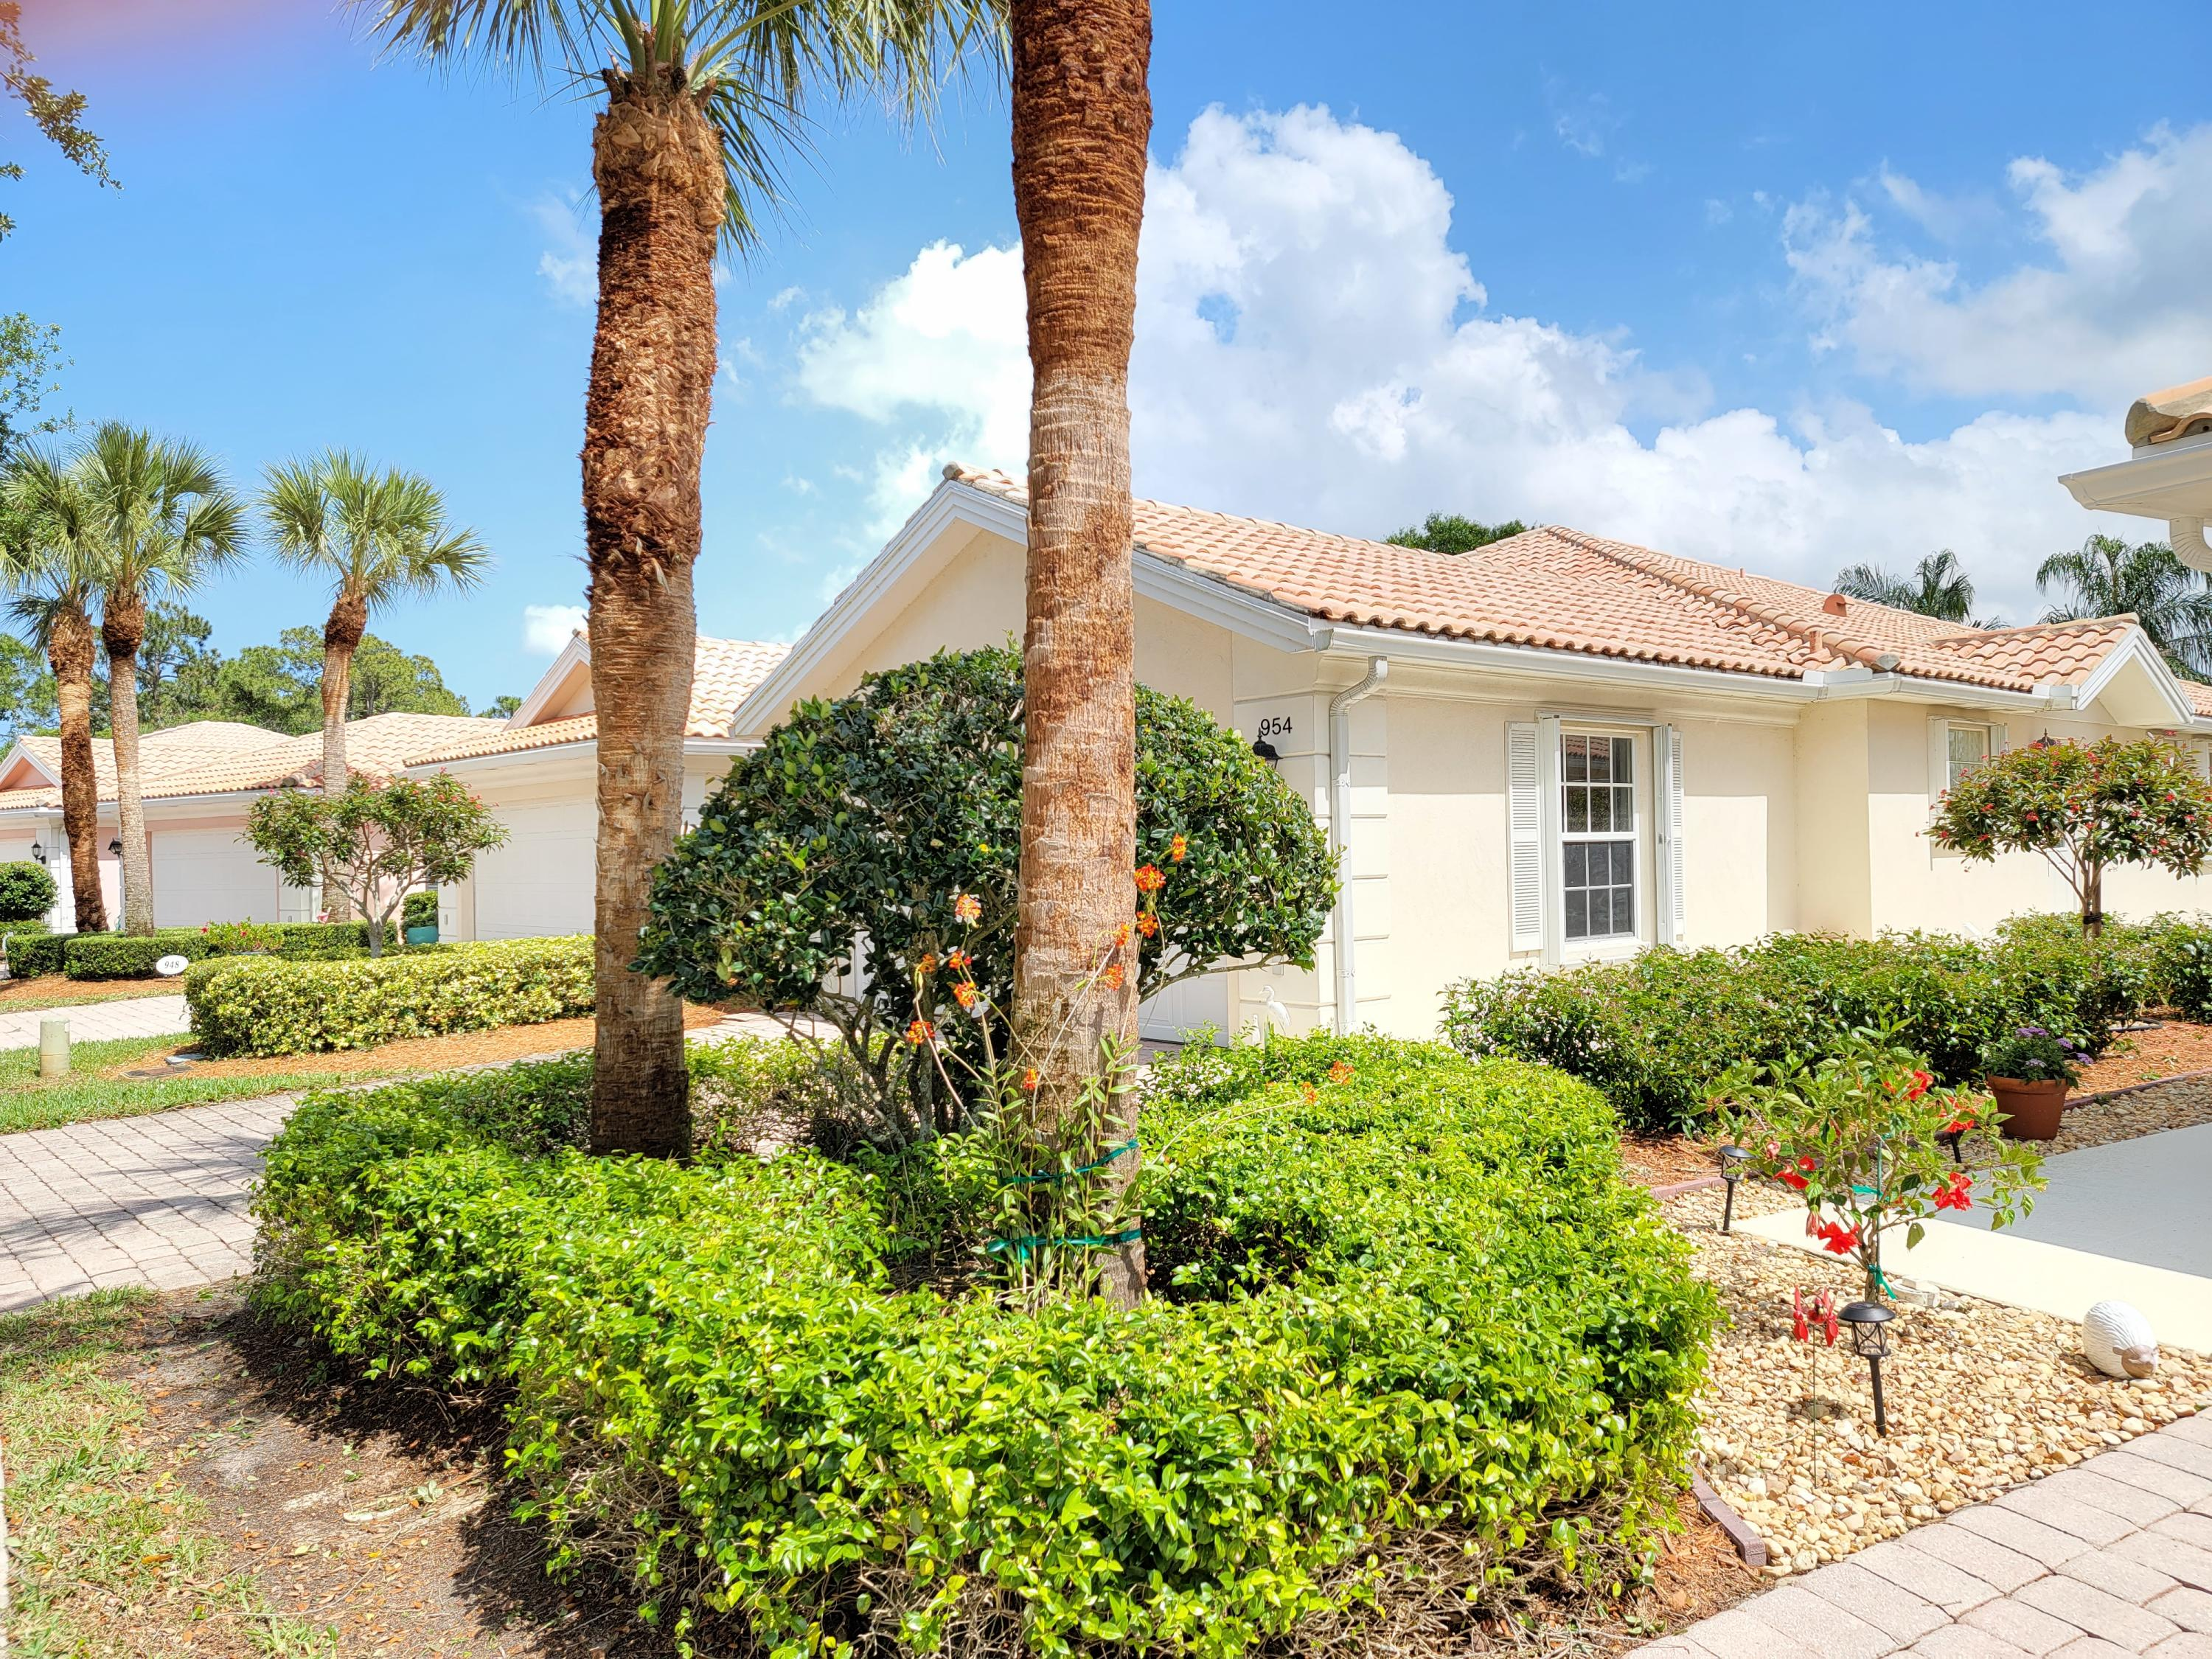 Home for sale in Florida Club, Pud Phase Iv Stuart Florida